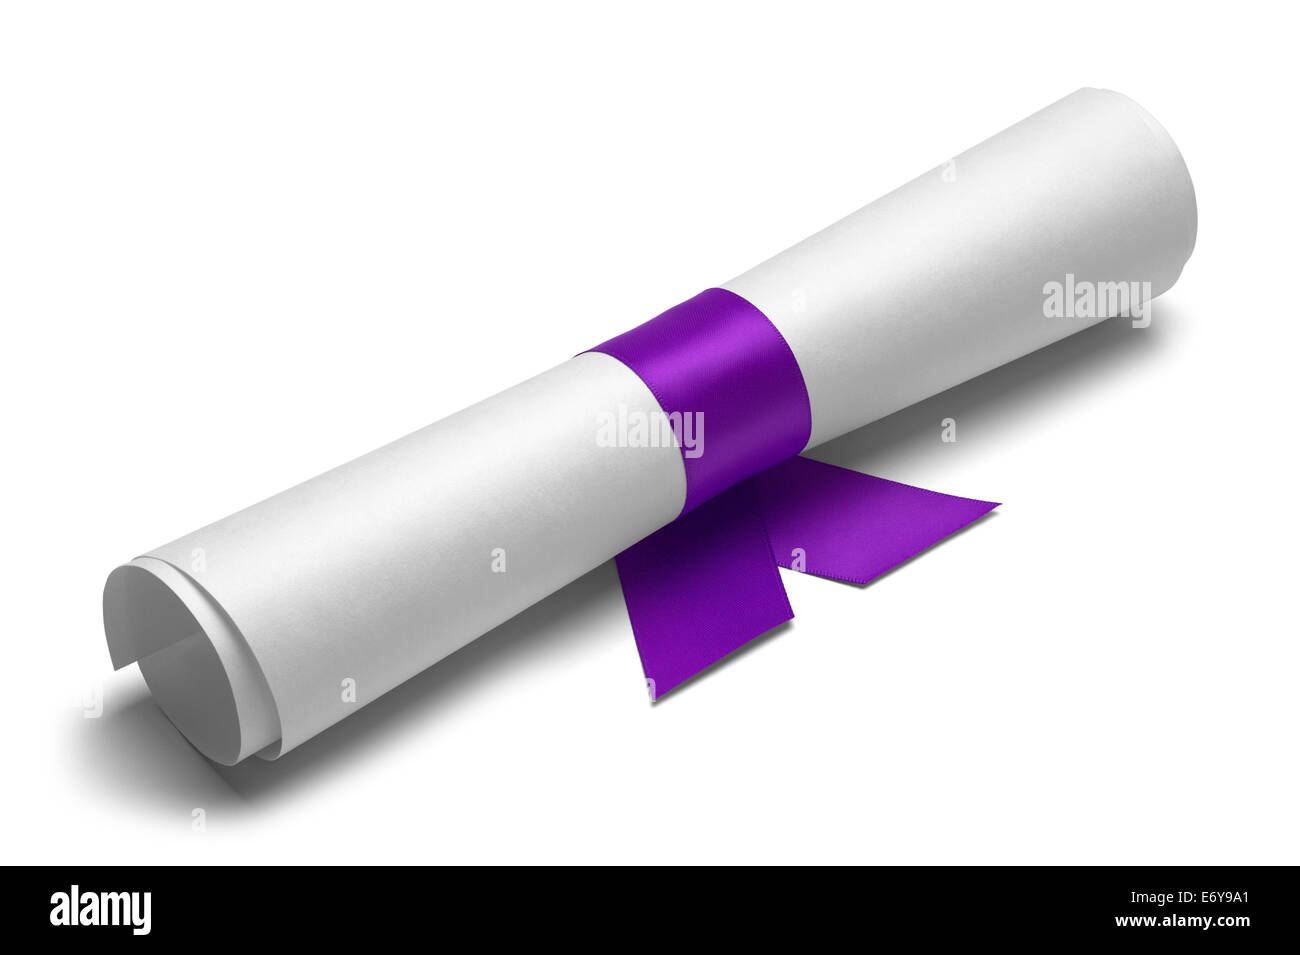 Diploma tied with purple ribbon on a white isolated background. - Stock Image